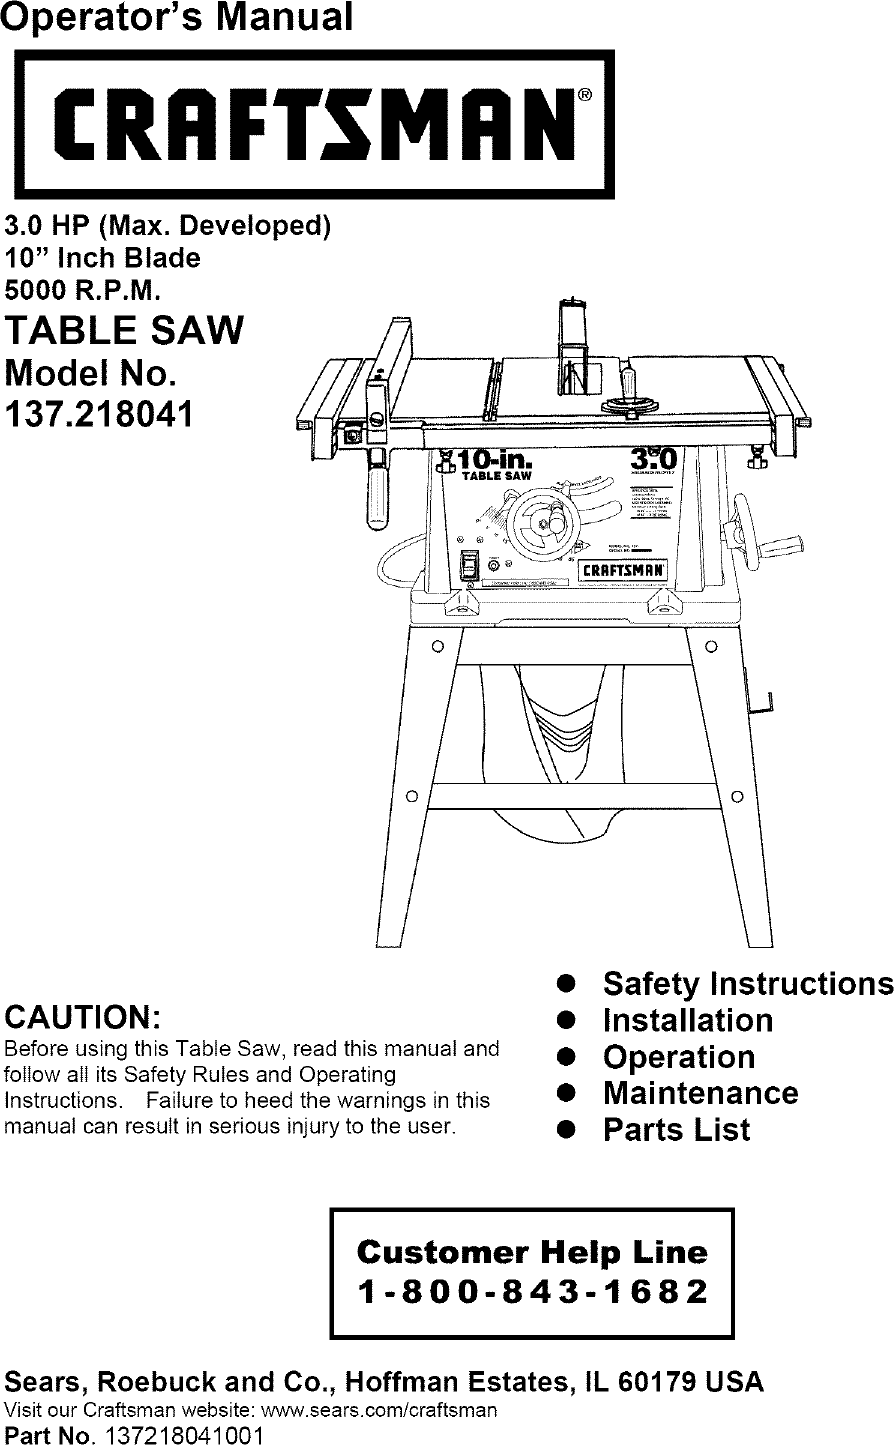 Craftsman 137218041 User Manual Table Saw Manuals And Guides L0606543 Sears 10 Switch Wiring Diagram